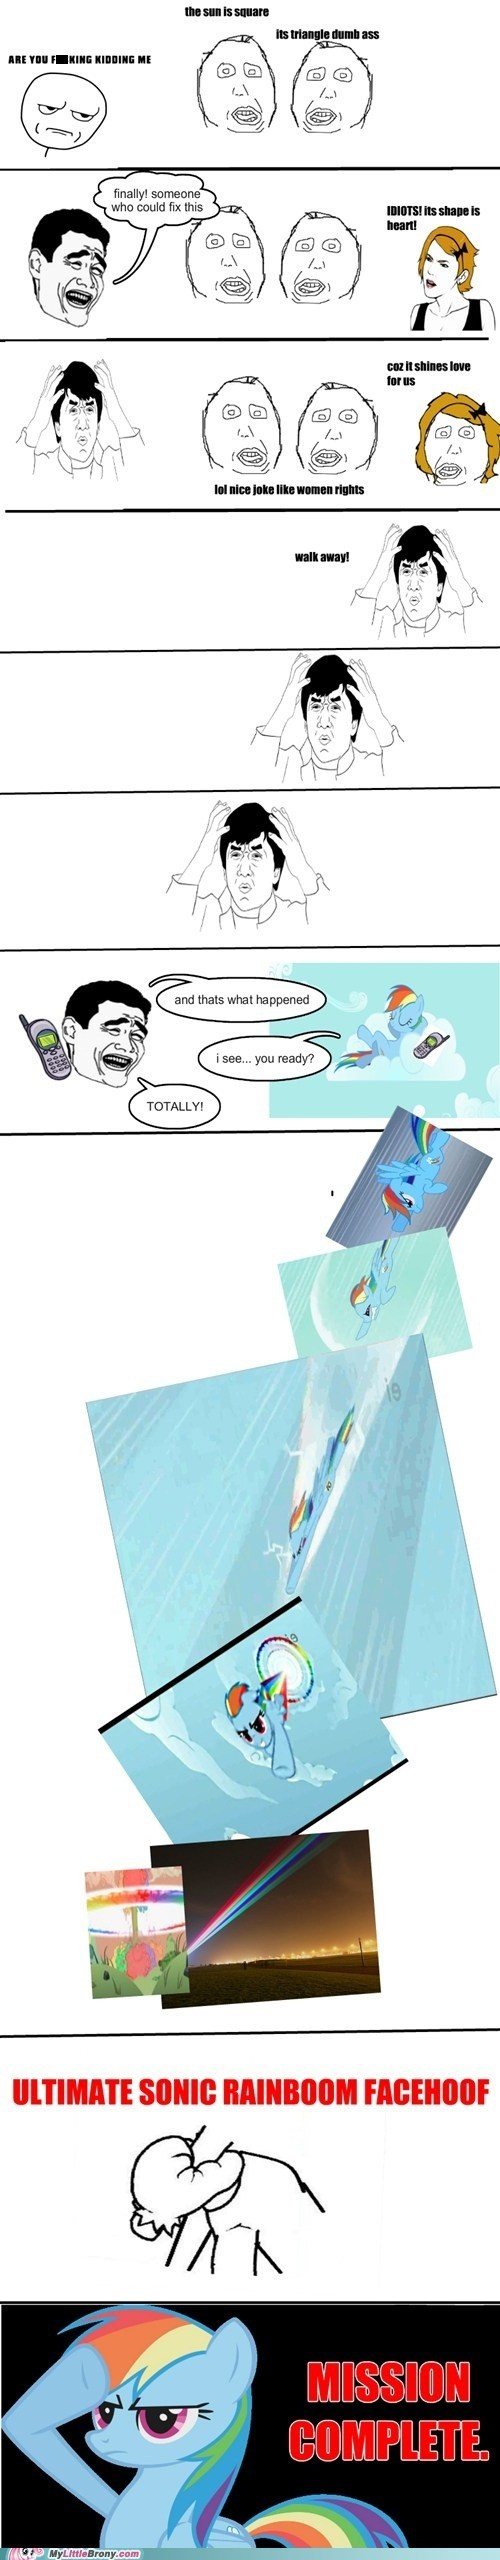 rage comic that has to hurt ultimate sonic rainboom facehoof wtf - 6582474240